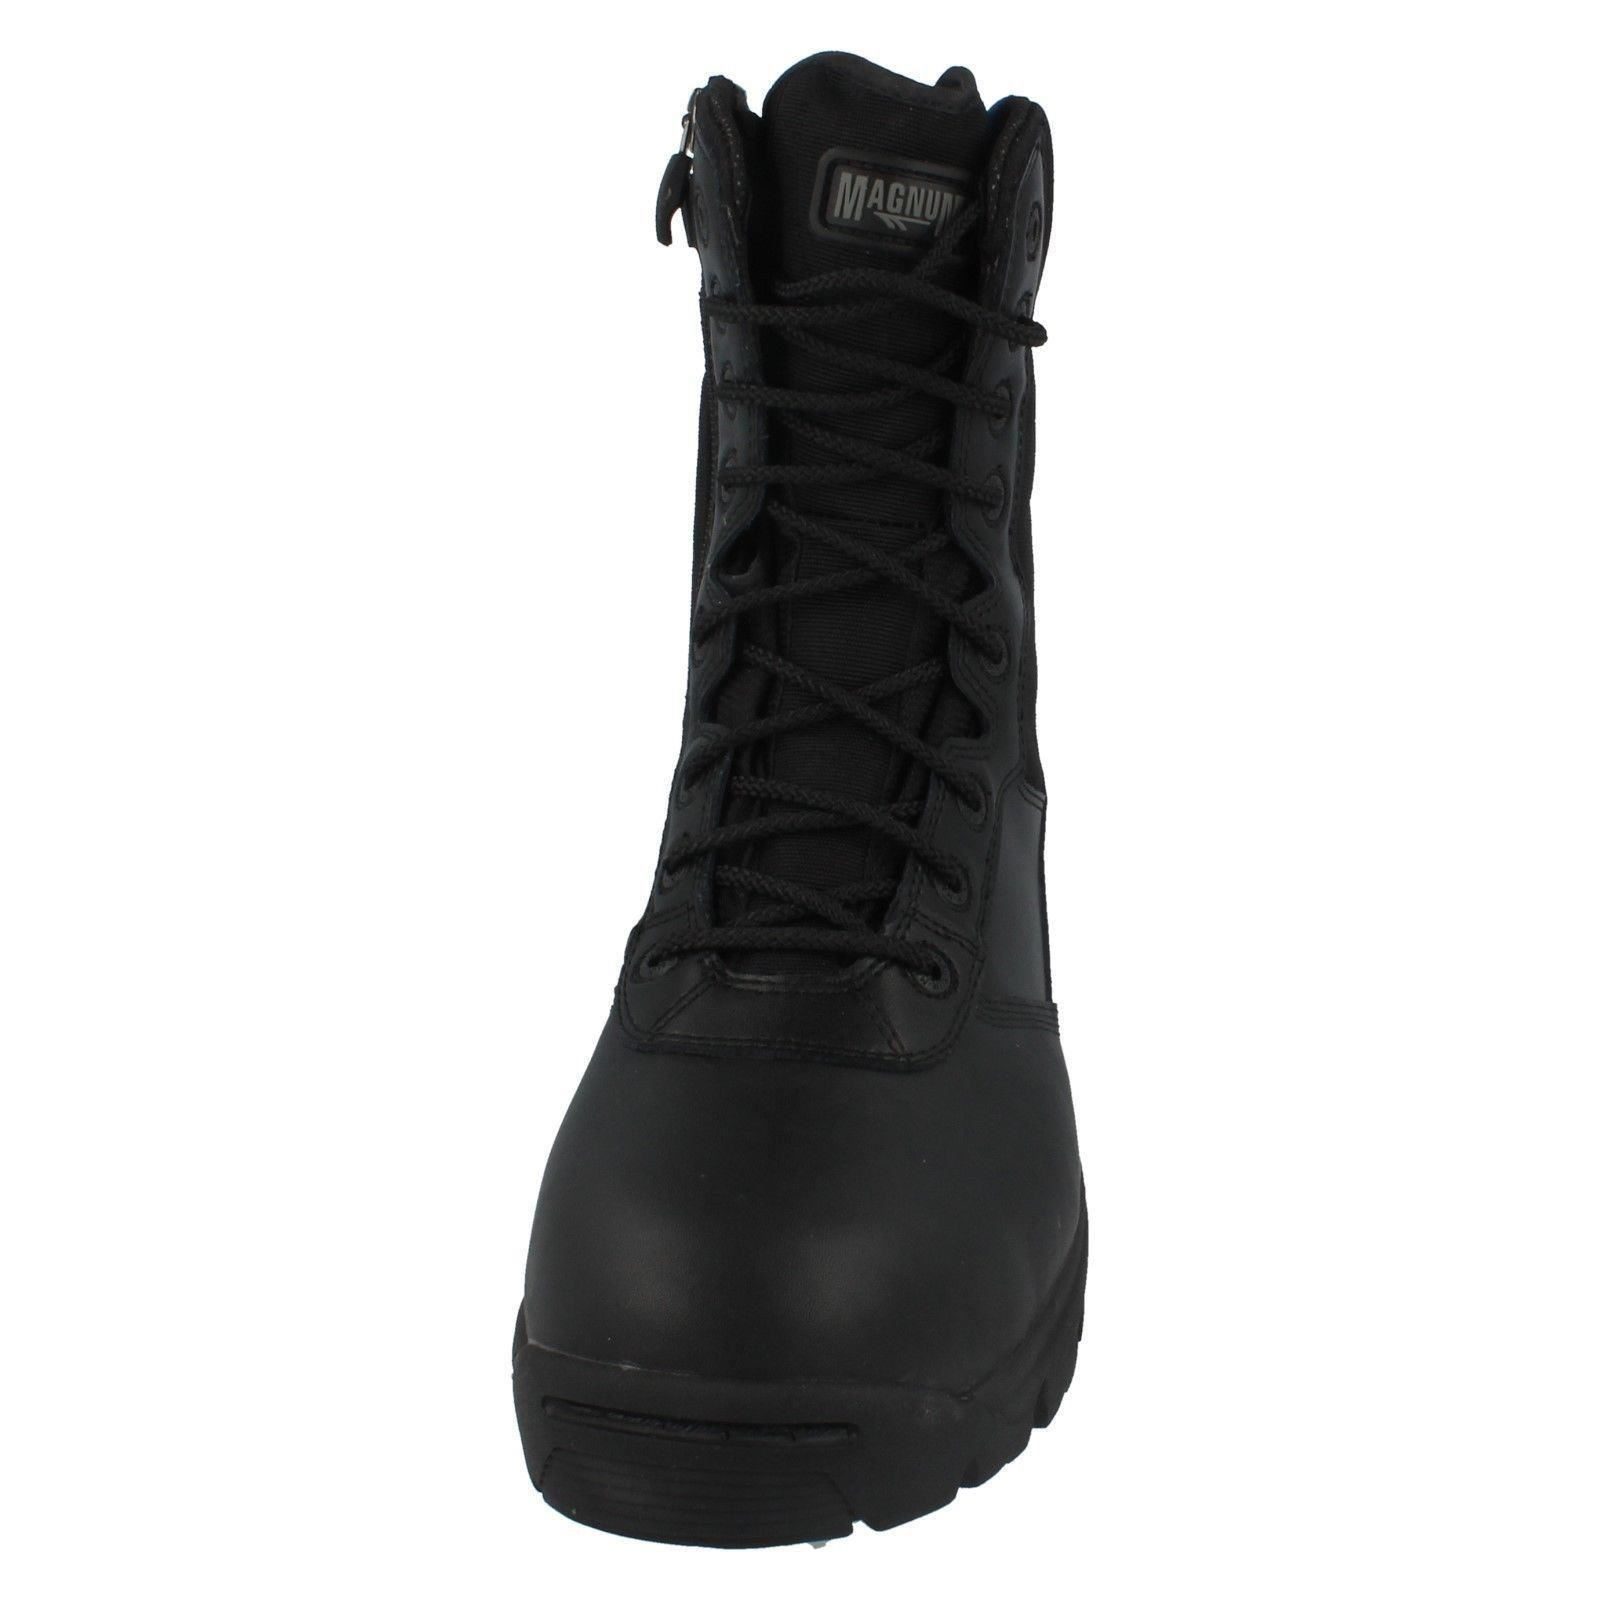 Mens Magnum Safety Boots ~ 'Phantom' The Style ~ Boots K 4988f5